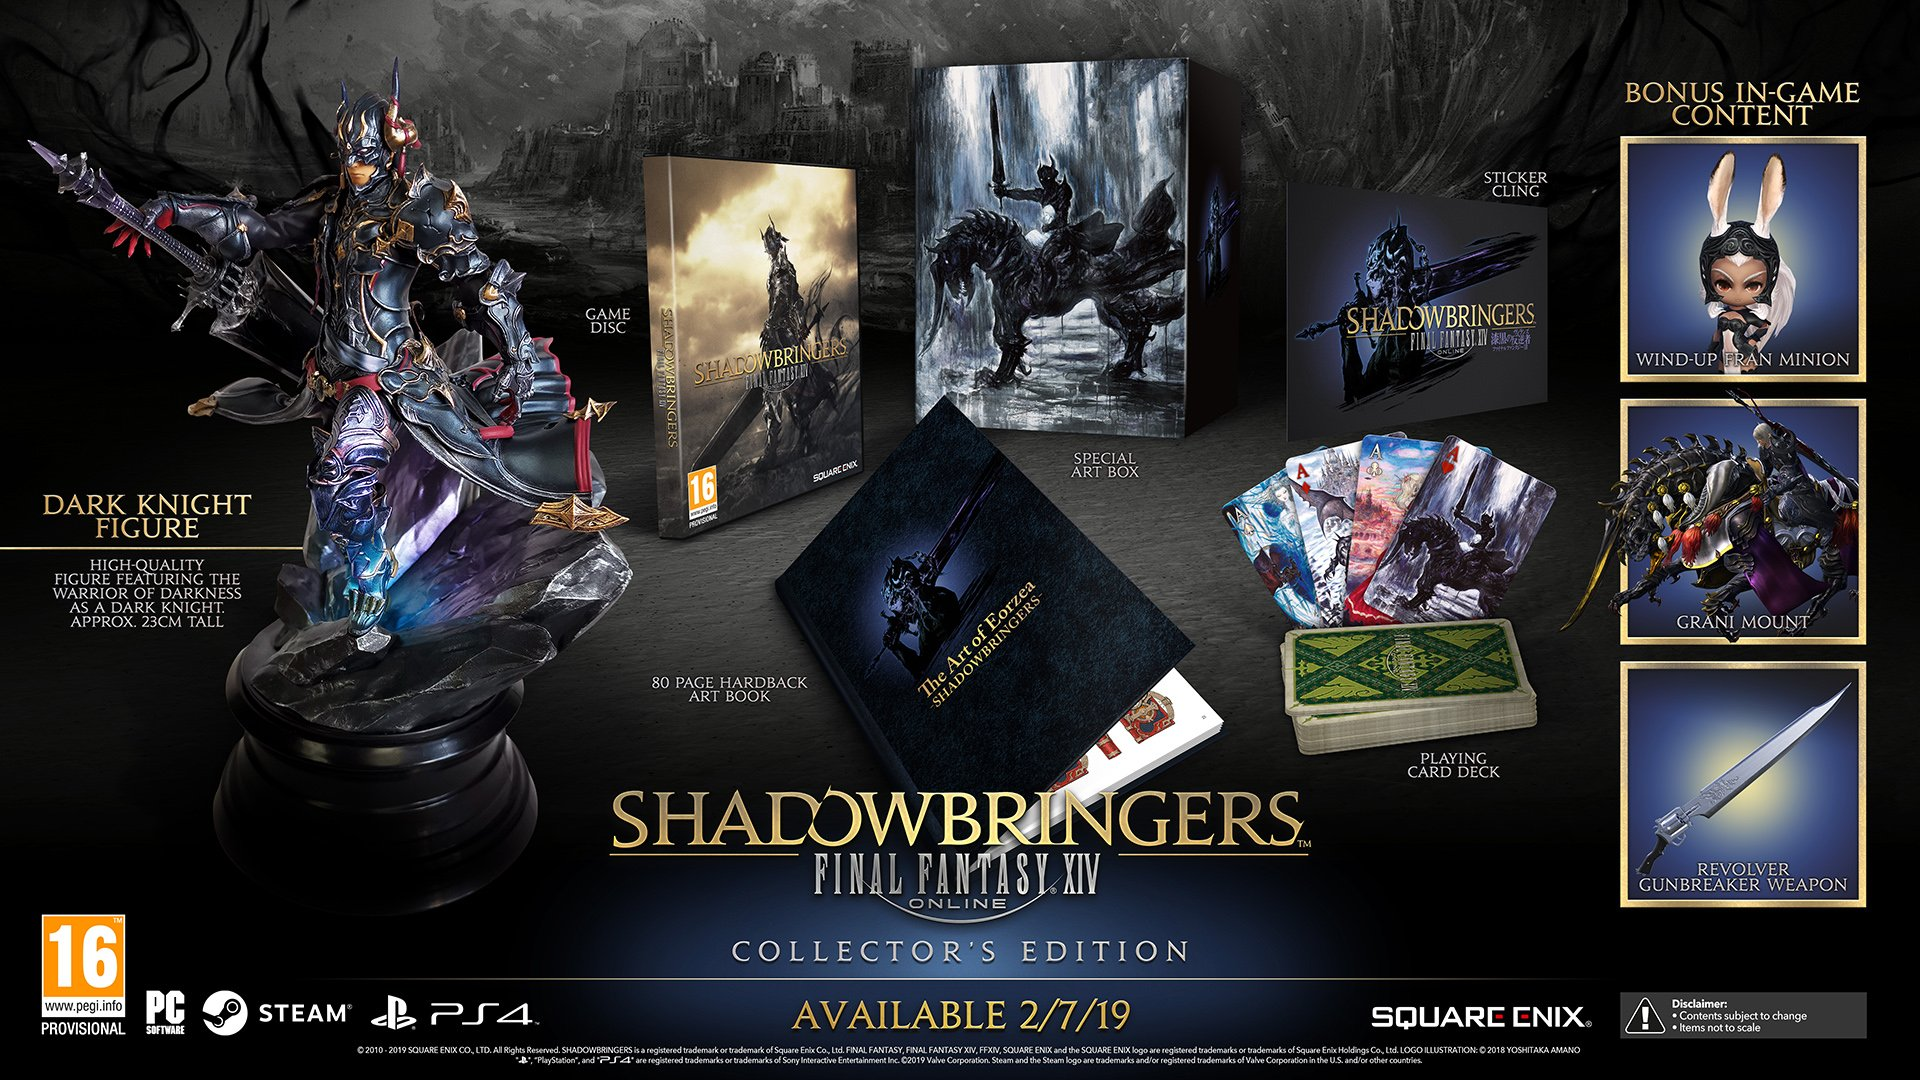 The Complete Guide to the Final Fantasy XIV: Shadowbringers